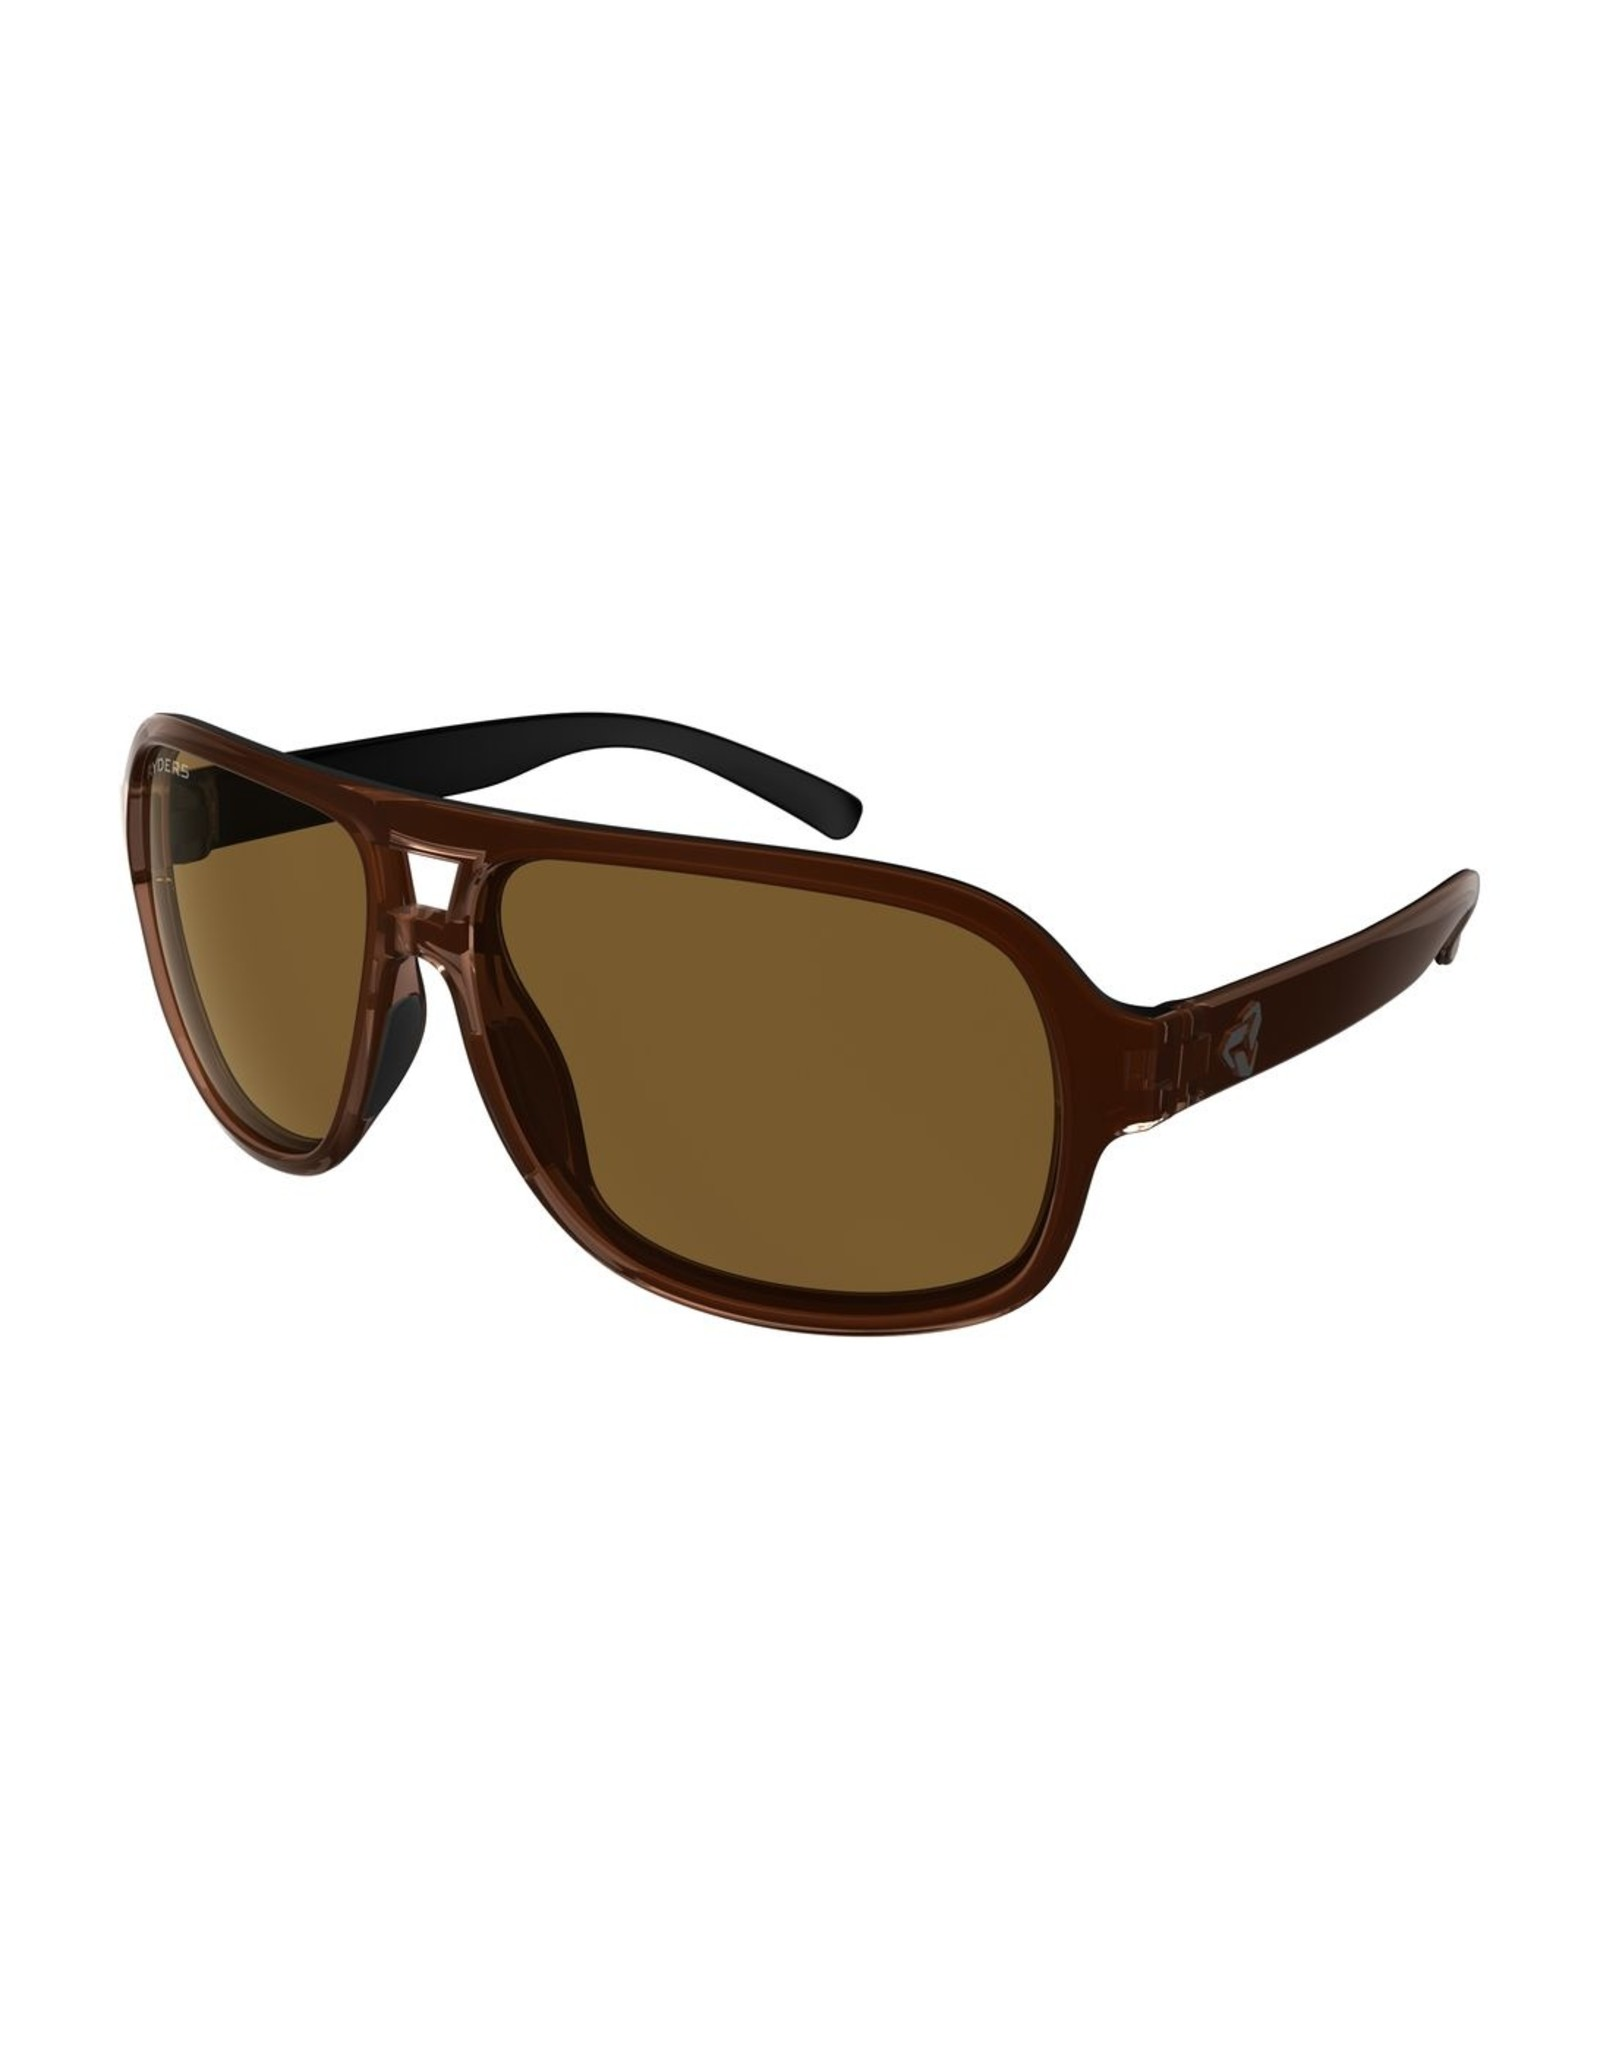 RYDERS PINT POLY BROWN XTAL - BLACK / BROWN LENS